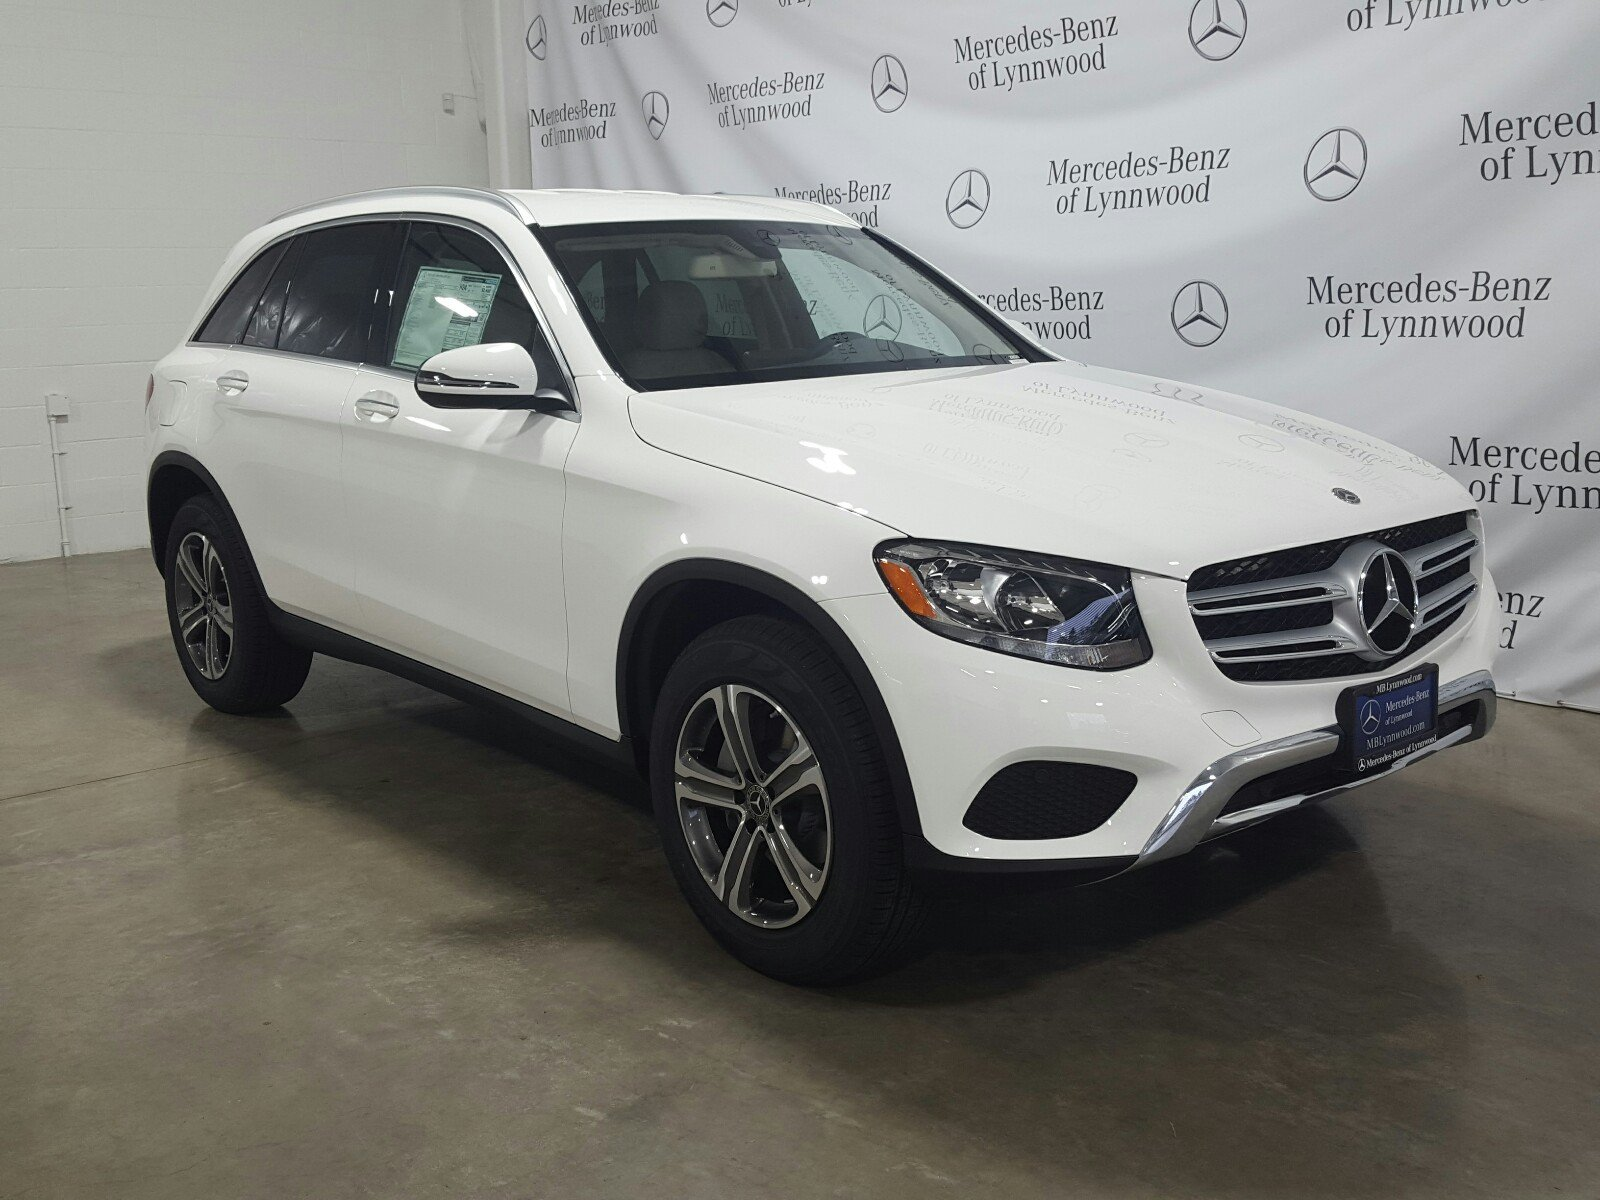 New 2019 Mercedes Benz GLC GLC 300 4MATIC SUV in Lynnwood